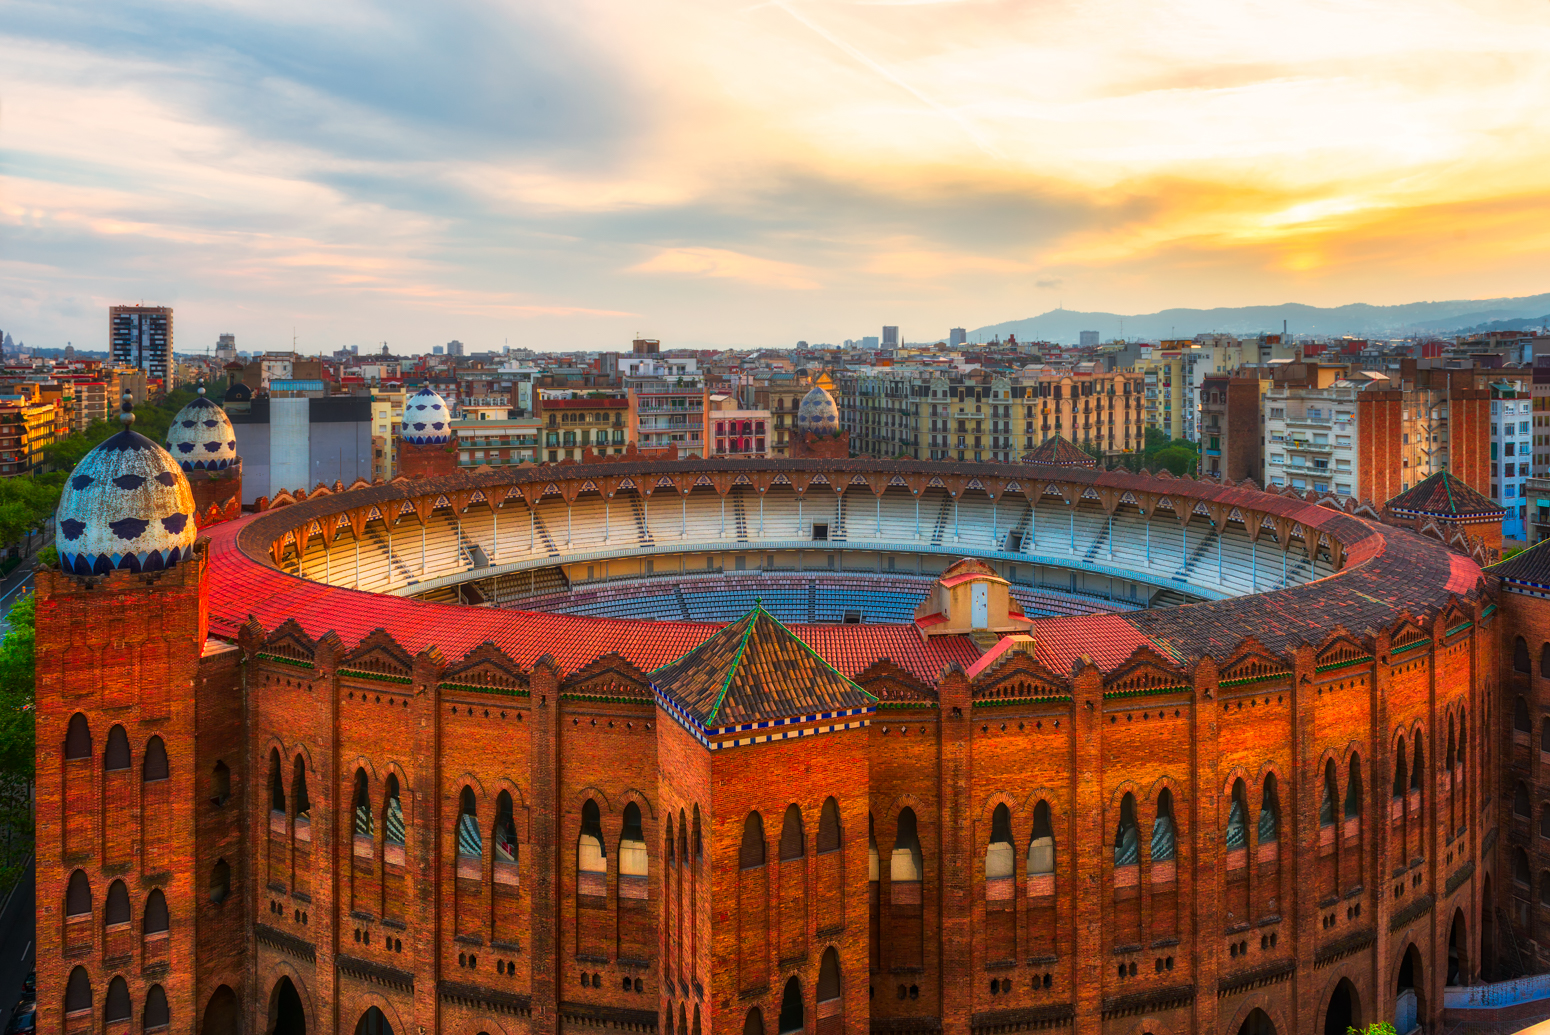 La Monumental | Barcelona, Spain